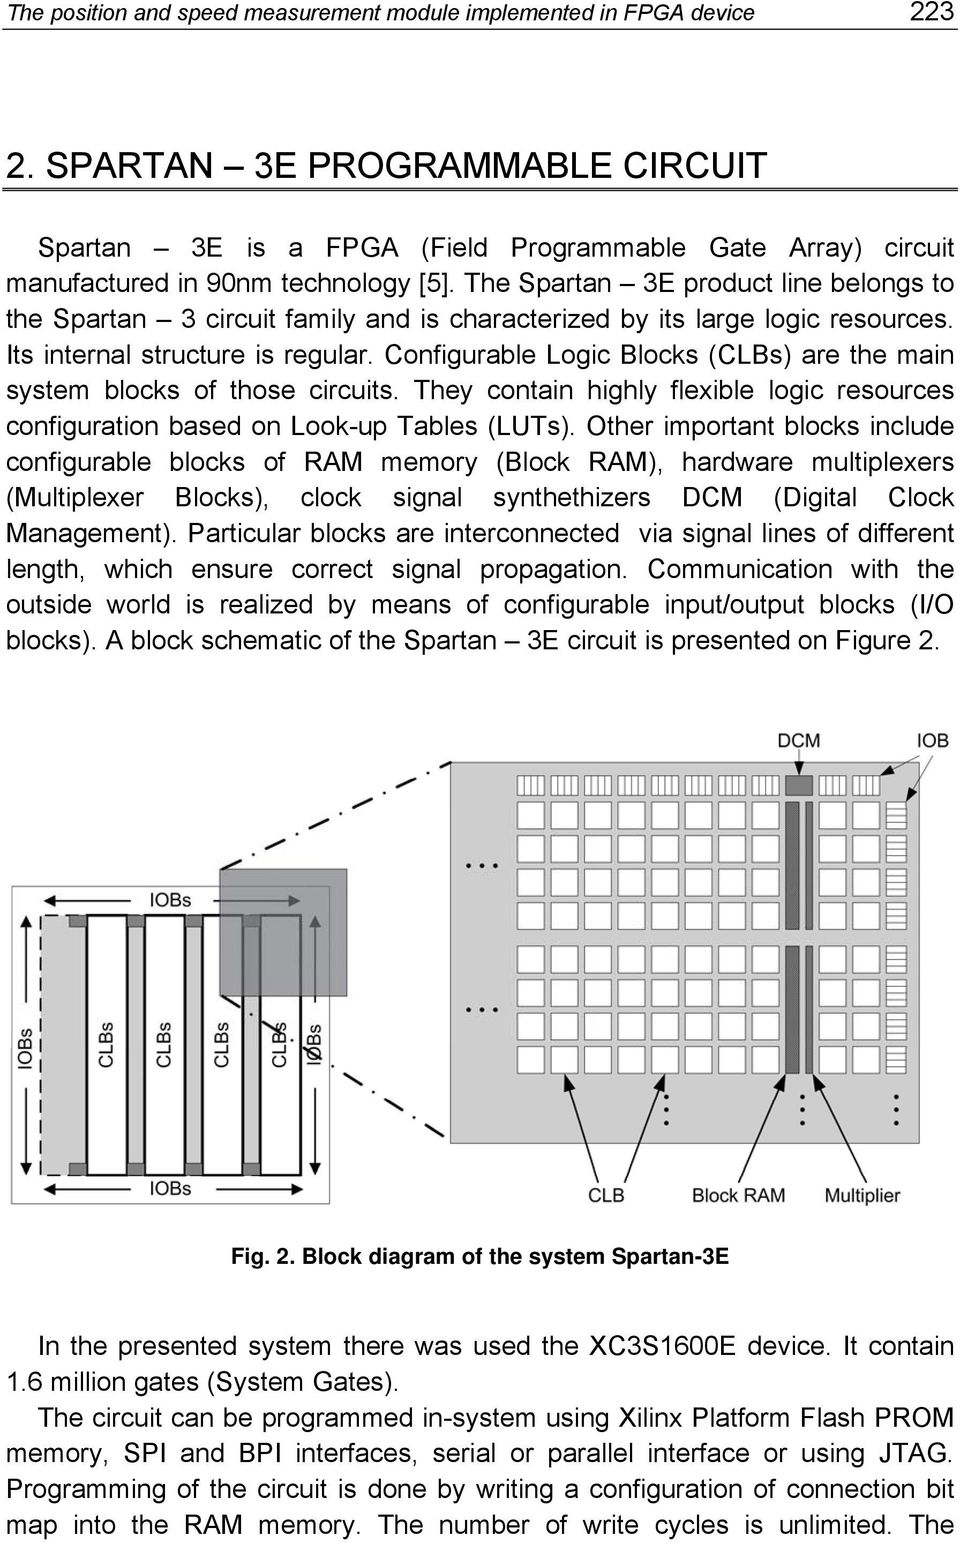 The Spartan 3E product line belongs to the Spartan 3 circuit family and is characterized by its large logic resources. Its internal structure is regular.